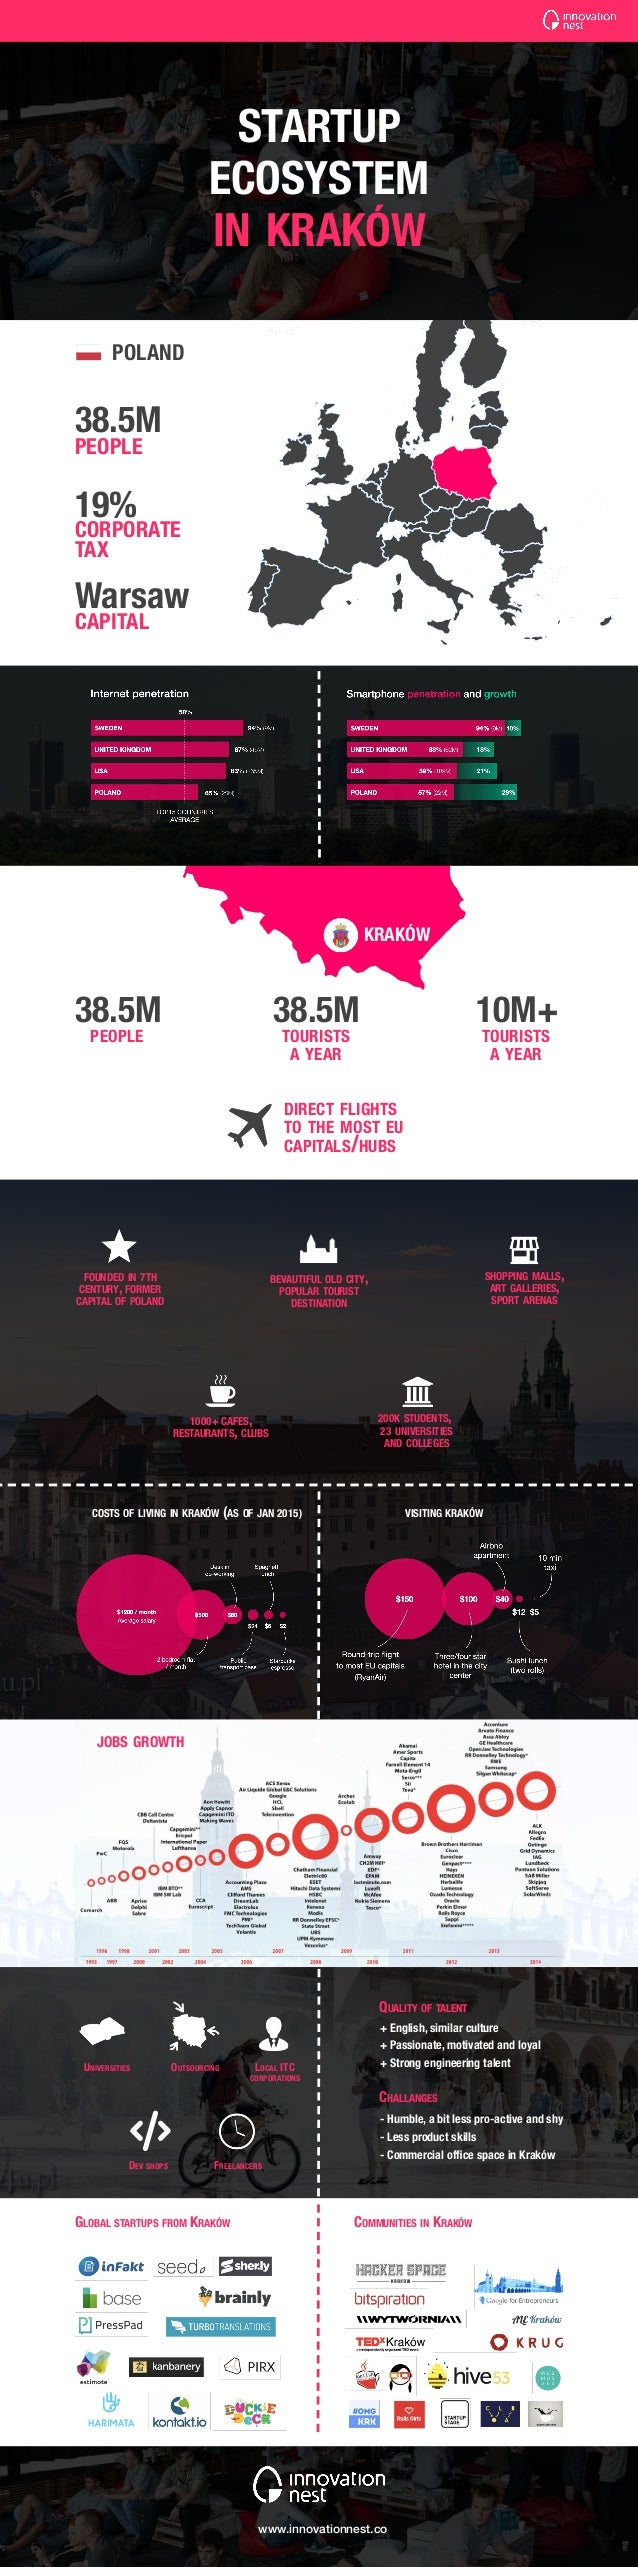 38.5M 38.5M 10M+38.5M PEOPLE PEOPLE TOURISTS A YEAR TOURISTS A YEAR FOUNDED IN 7TH CENTURY, FORMER CAPITAL OF POLAND UNIVE...